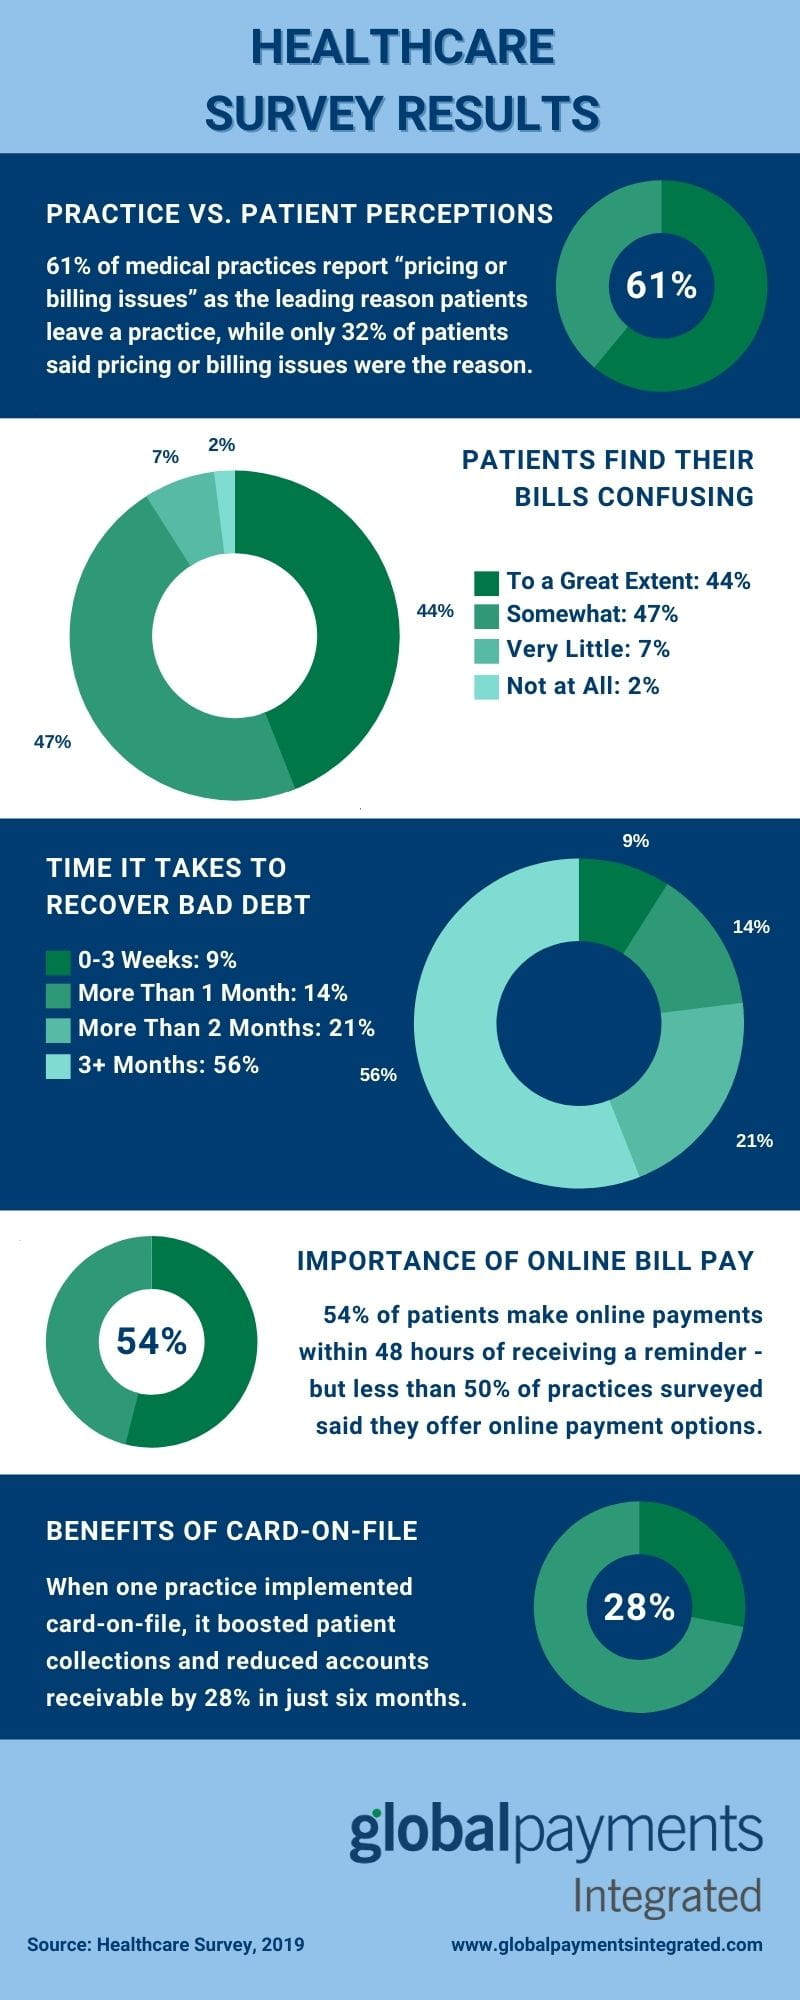 Healthcare survey results infographic